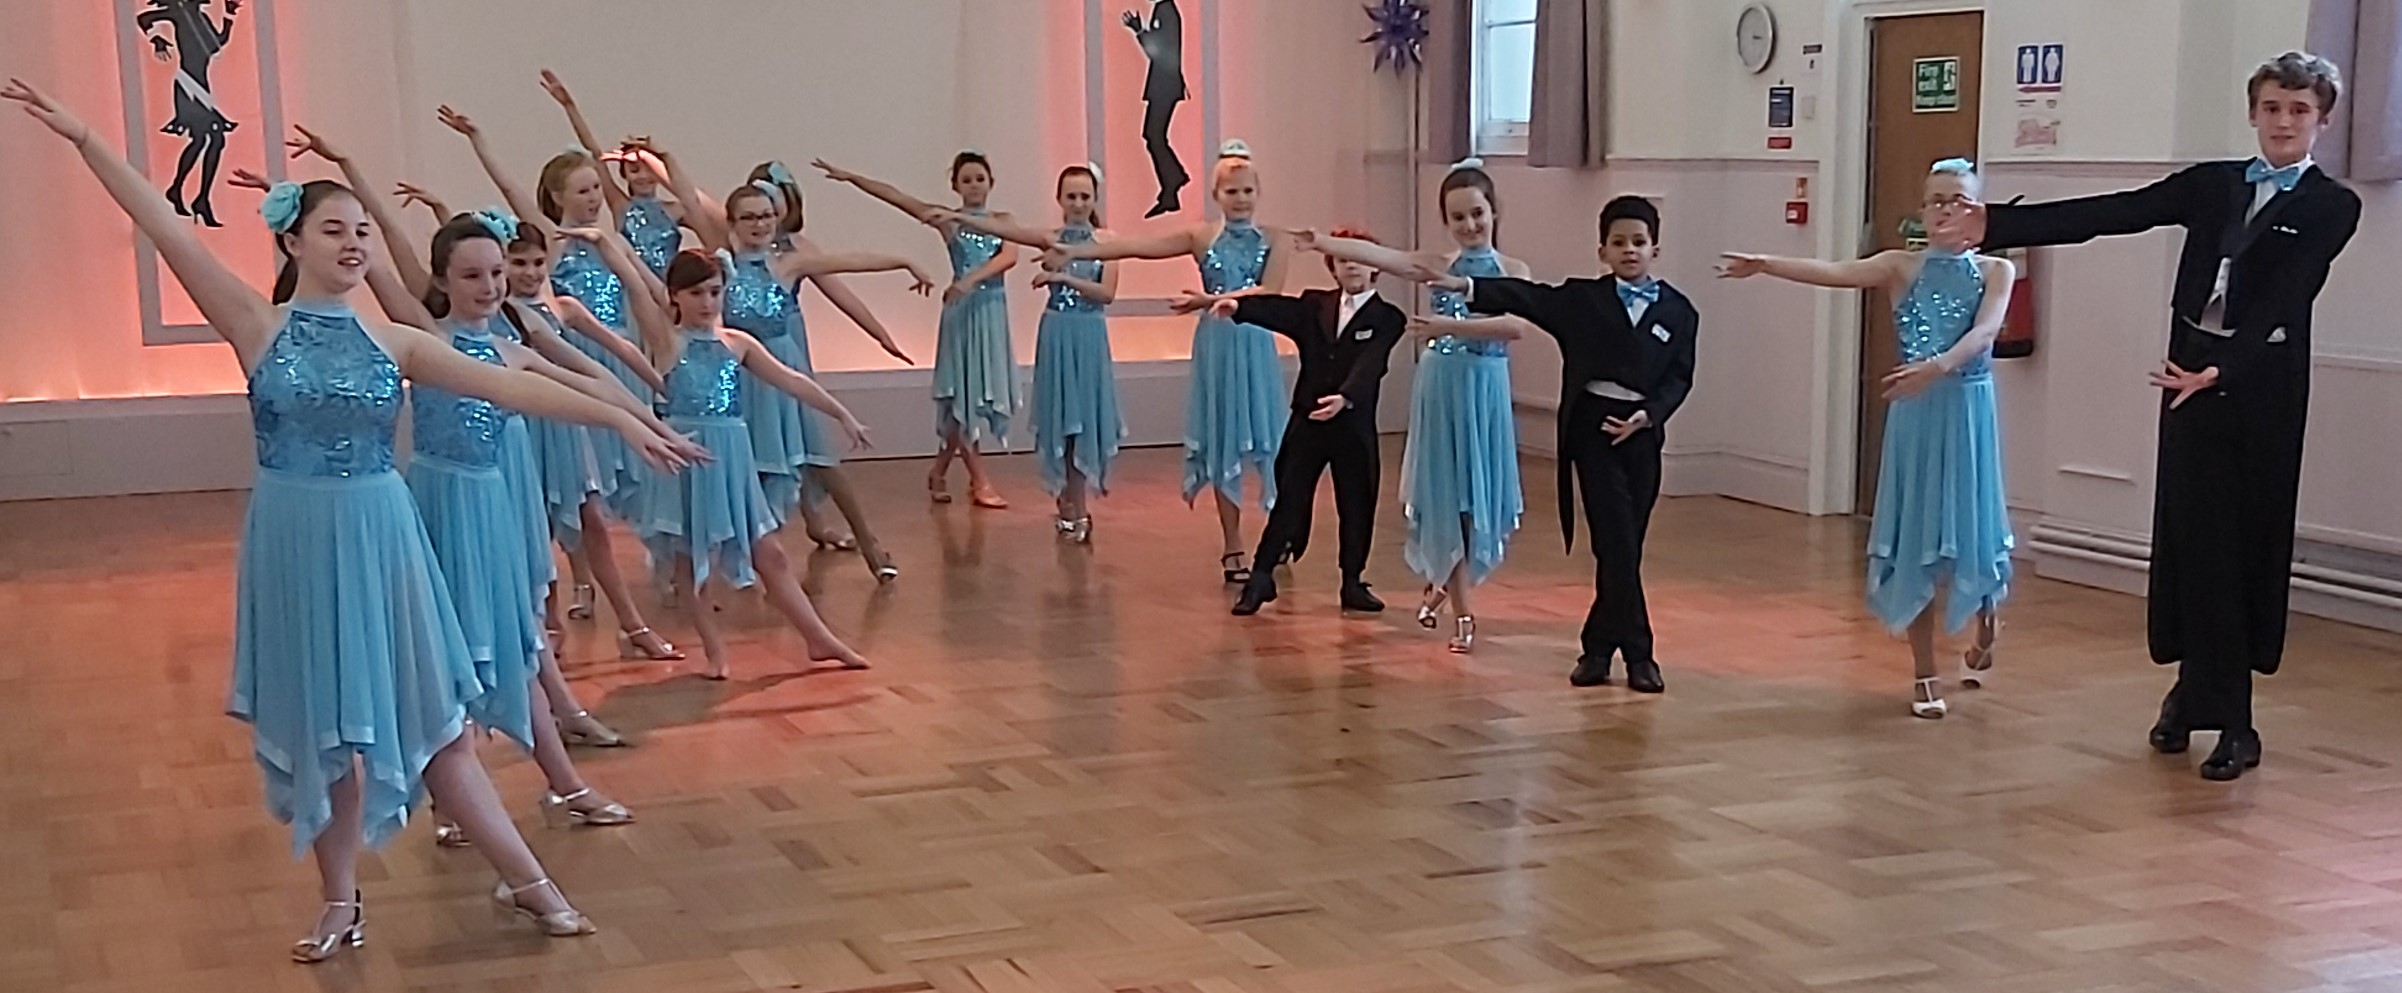 Children's ballroom dance classes